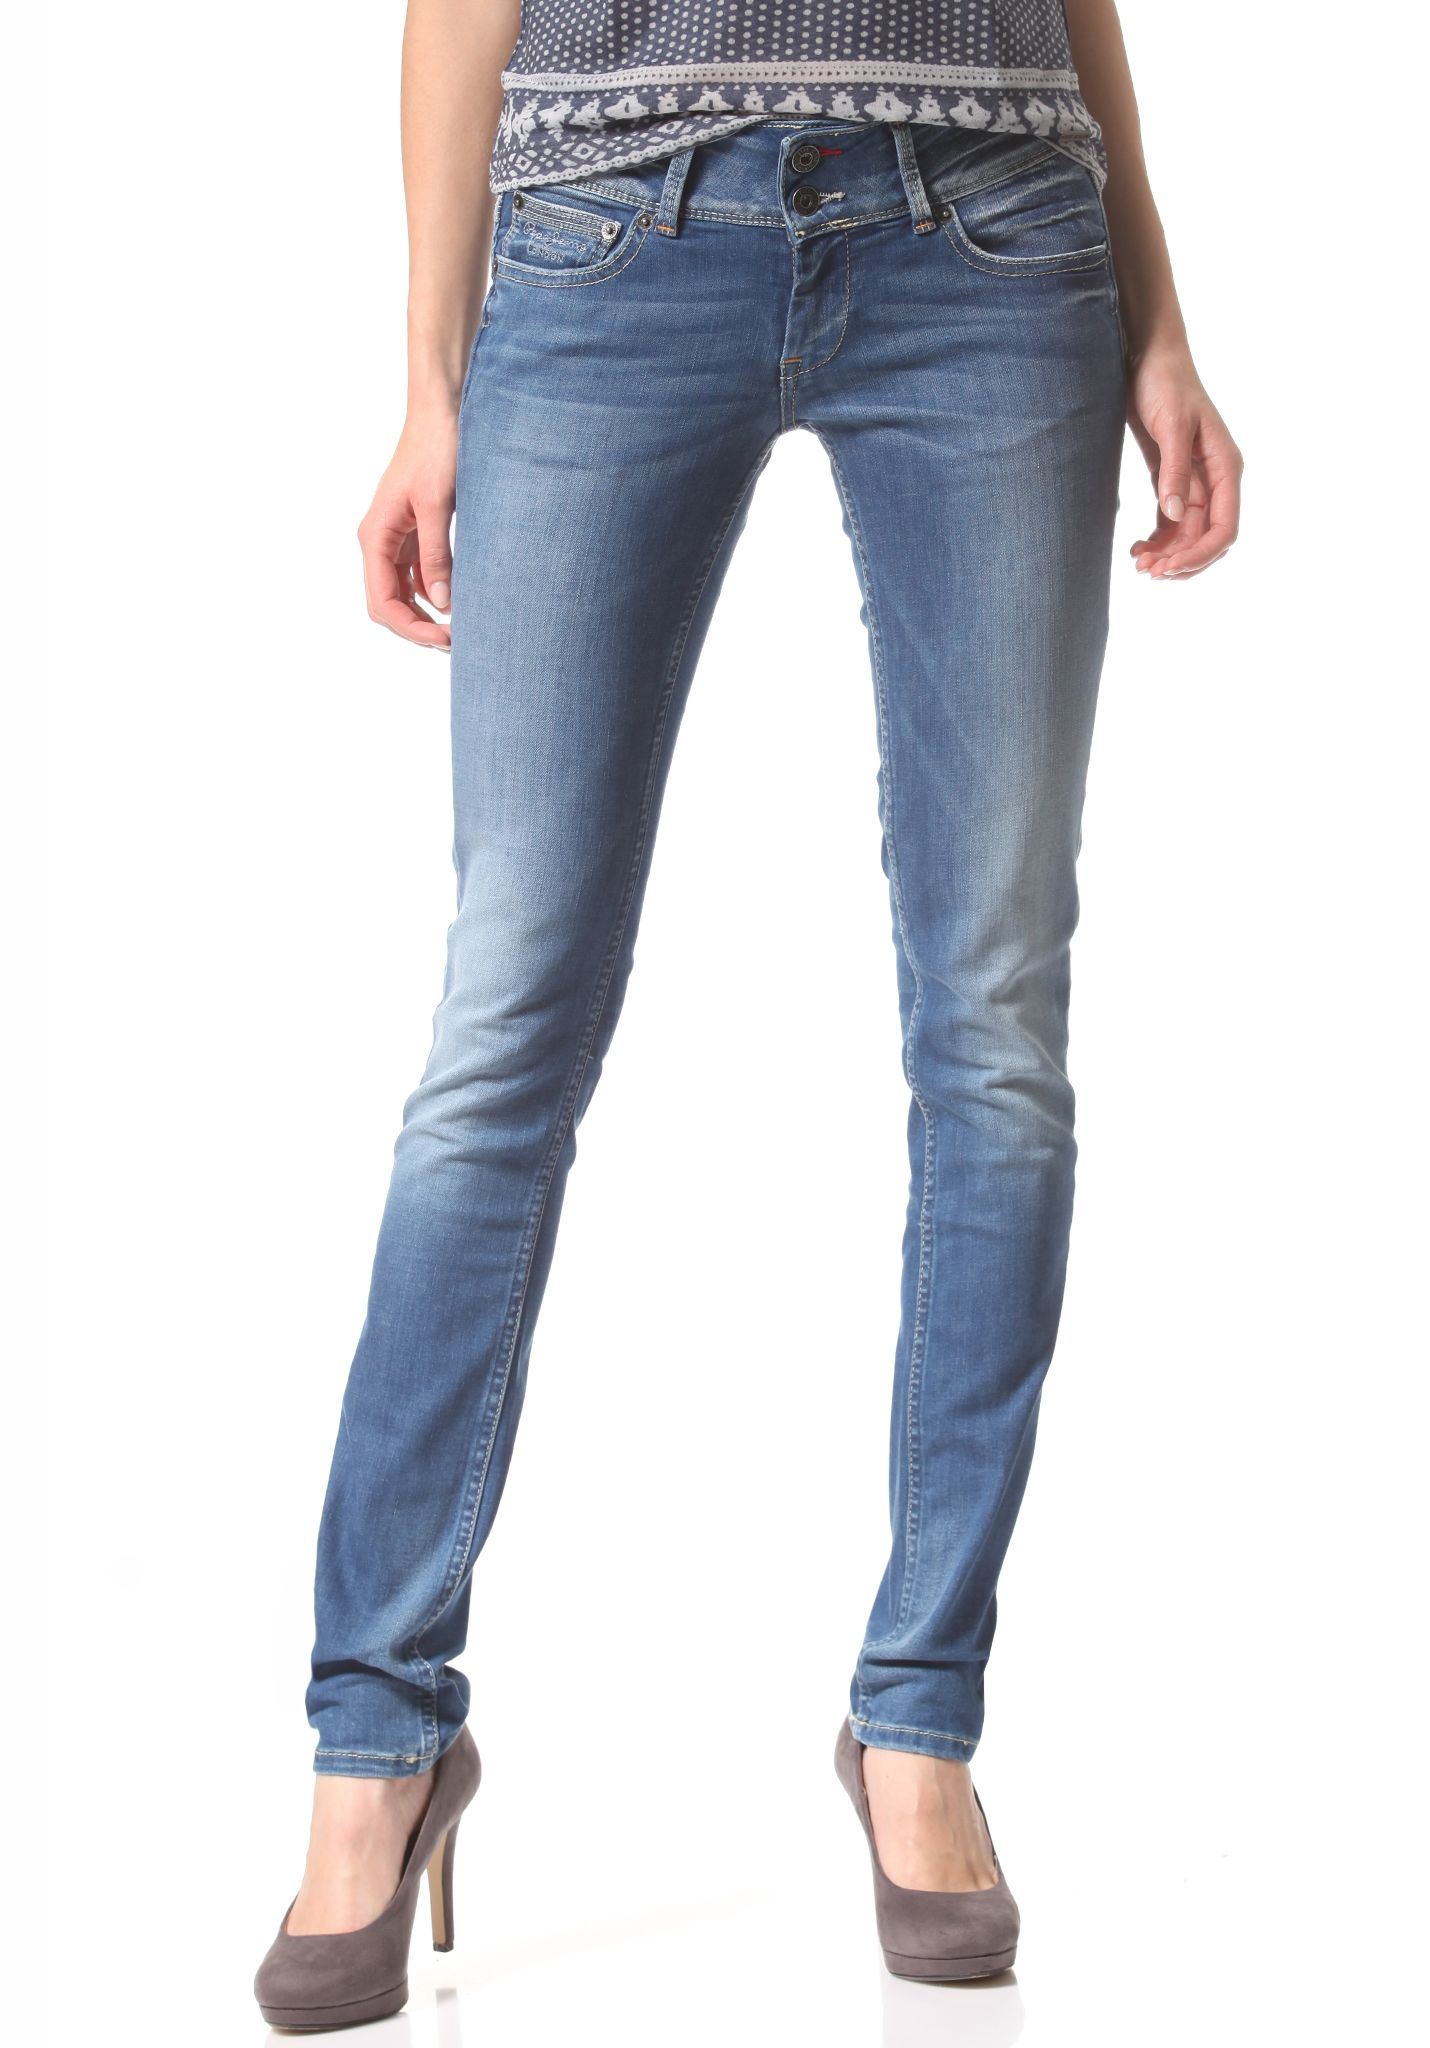 27191324787 PEPE JEANS Edition - Denim Jeans for Women - Blue - Planet Sports